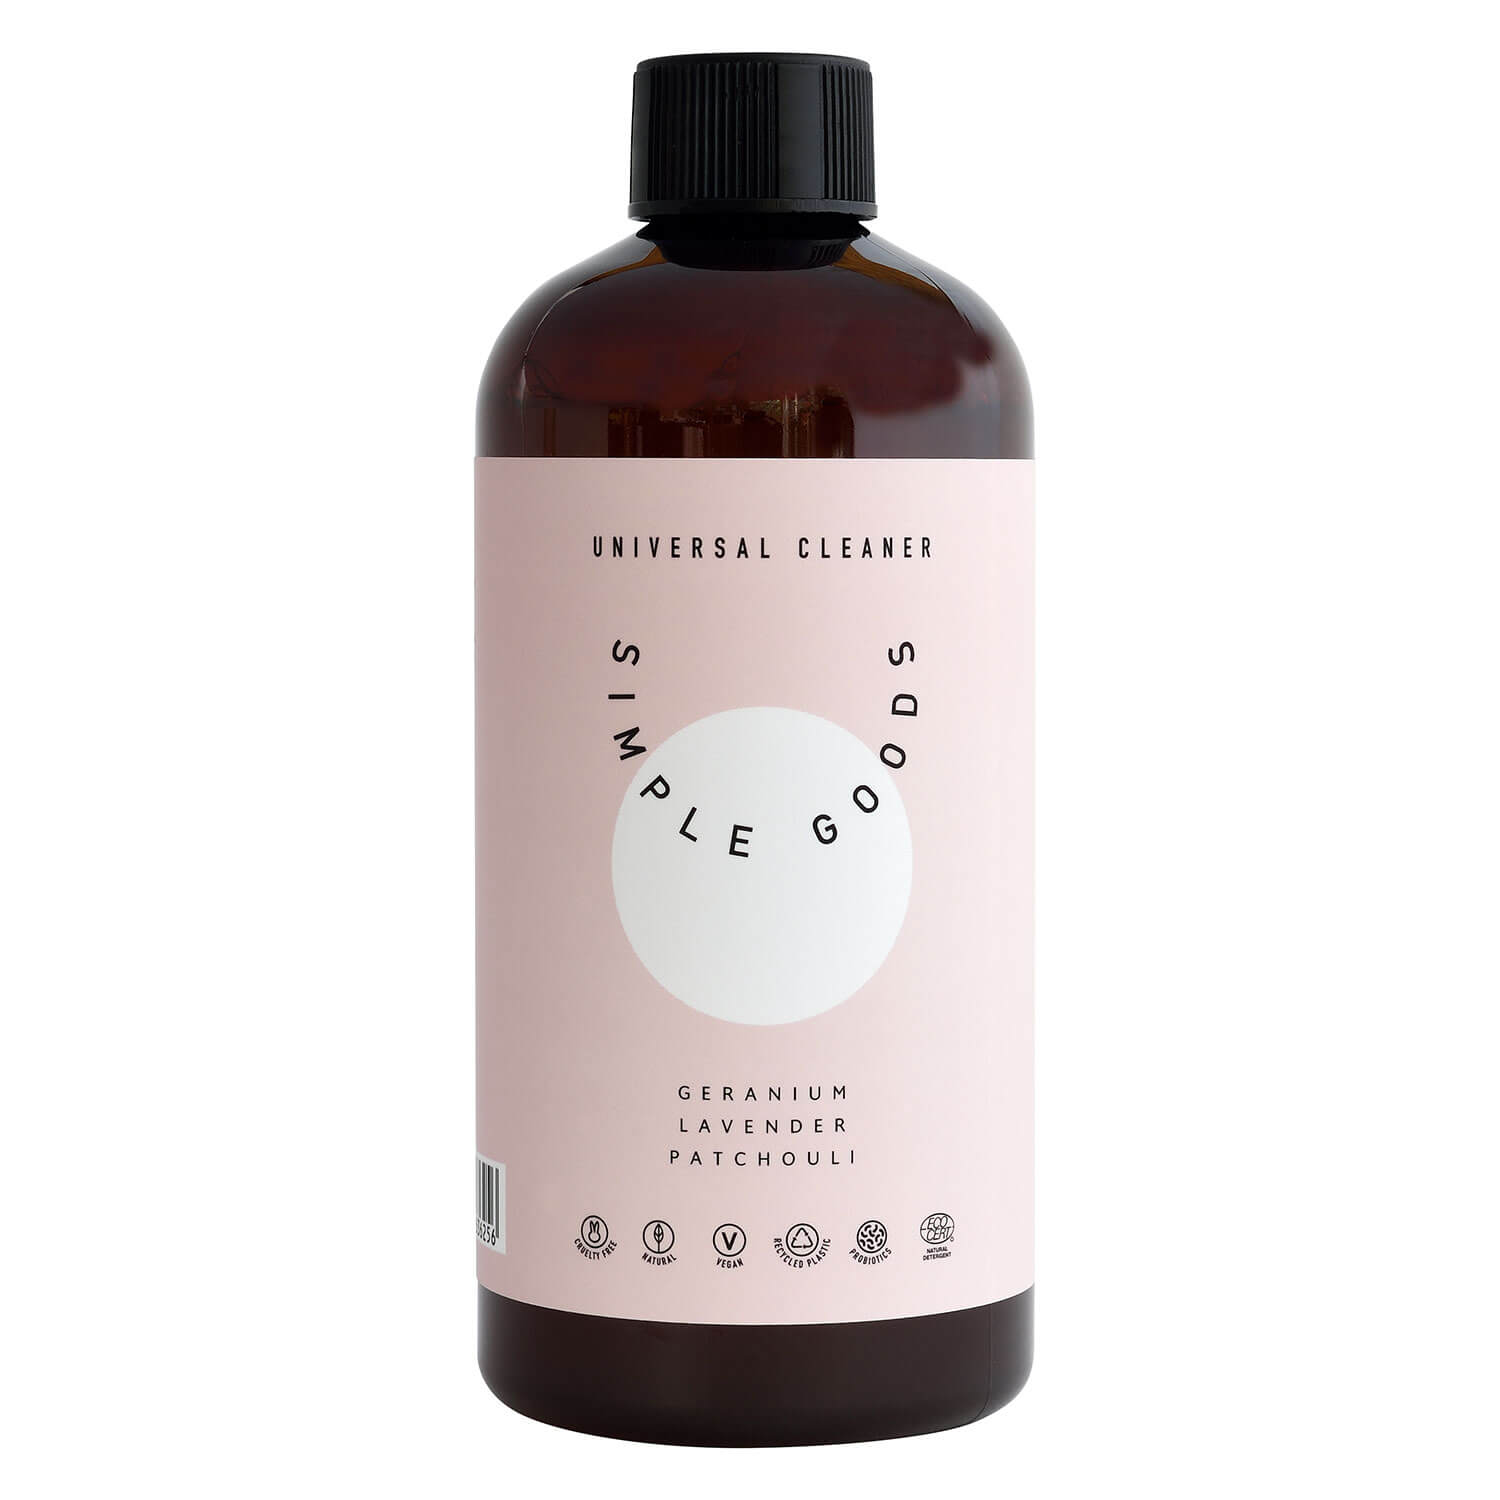 SIMPLE GOODS - Universal Cleaner Geranium, Lavender, Patchouli